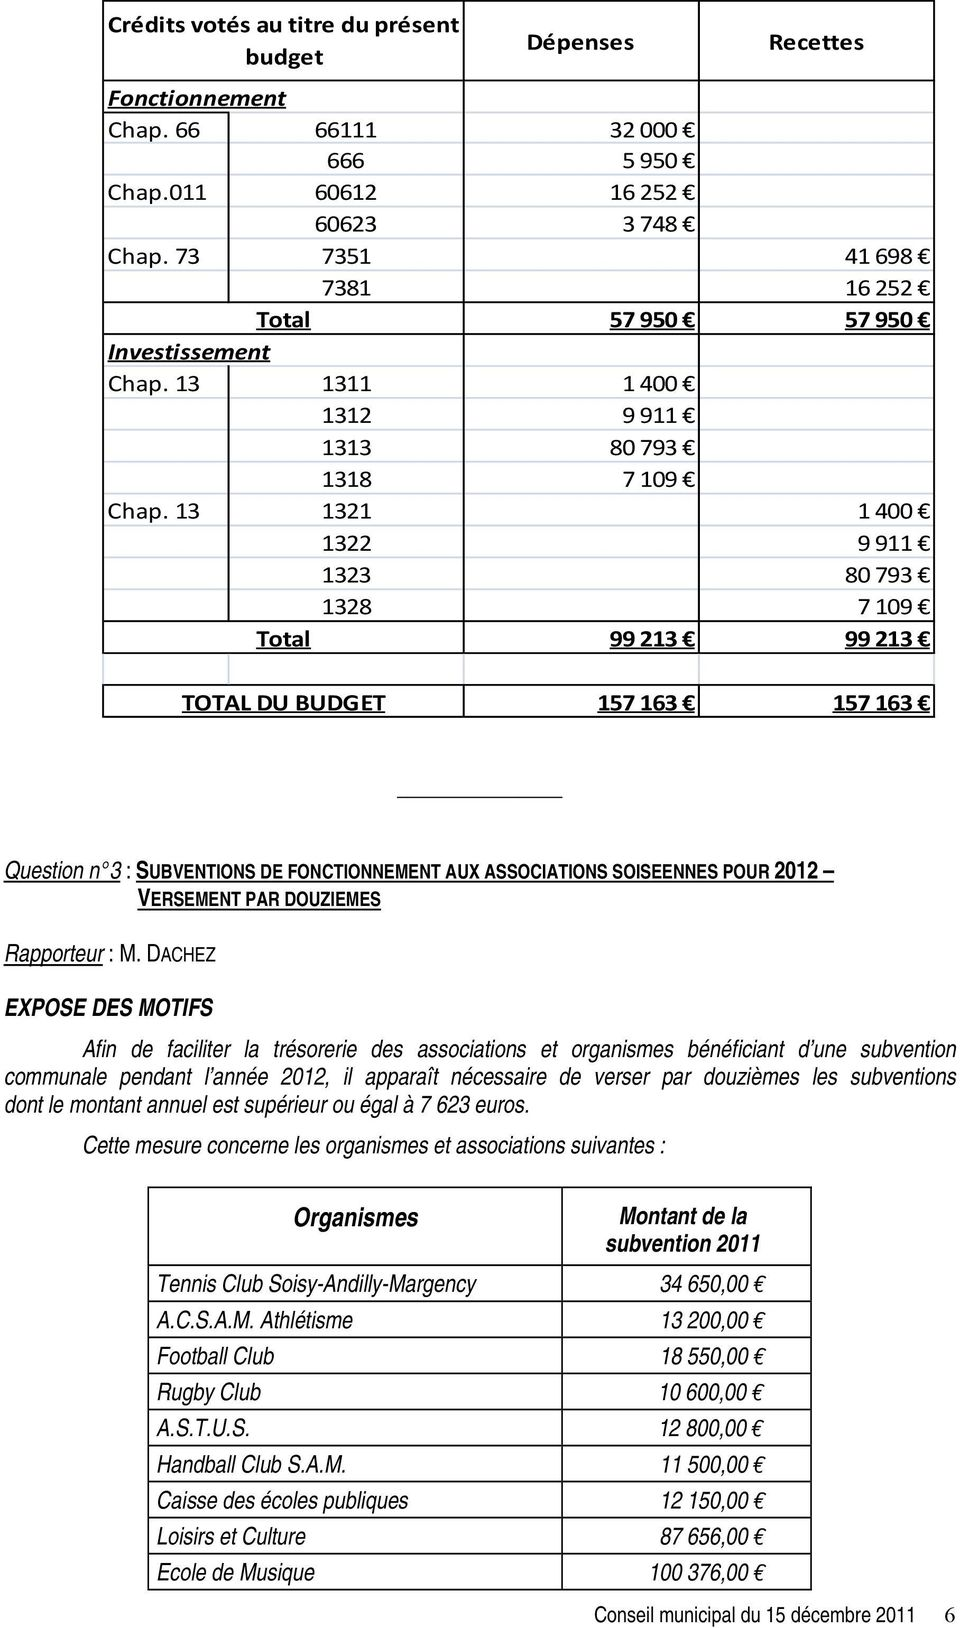 13 1321 1 400 1322 9 911 1323 80 793 1328 7 109 Total 99 213 99 213 TOTAL DU BUDGET 157 163 157 163 Question n 3 : SUBVENTIONS DE FONCTIONNEMENT AUX ASSOCIATIONS SOISEENNES POUR 2012 VERSEMENT PAR